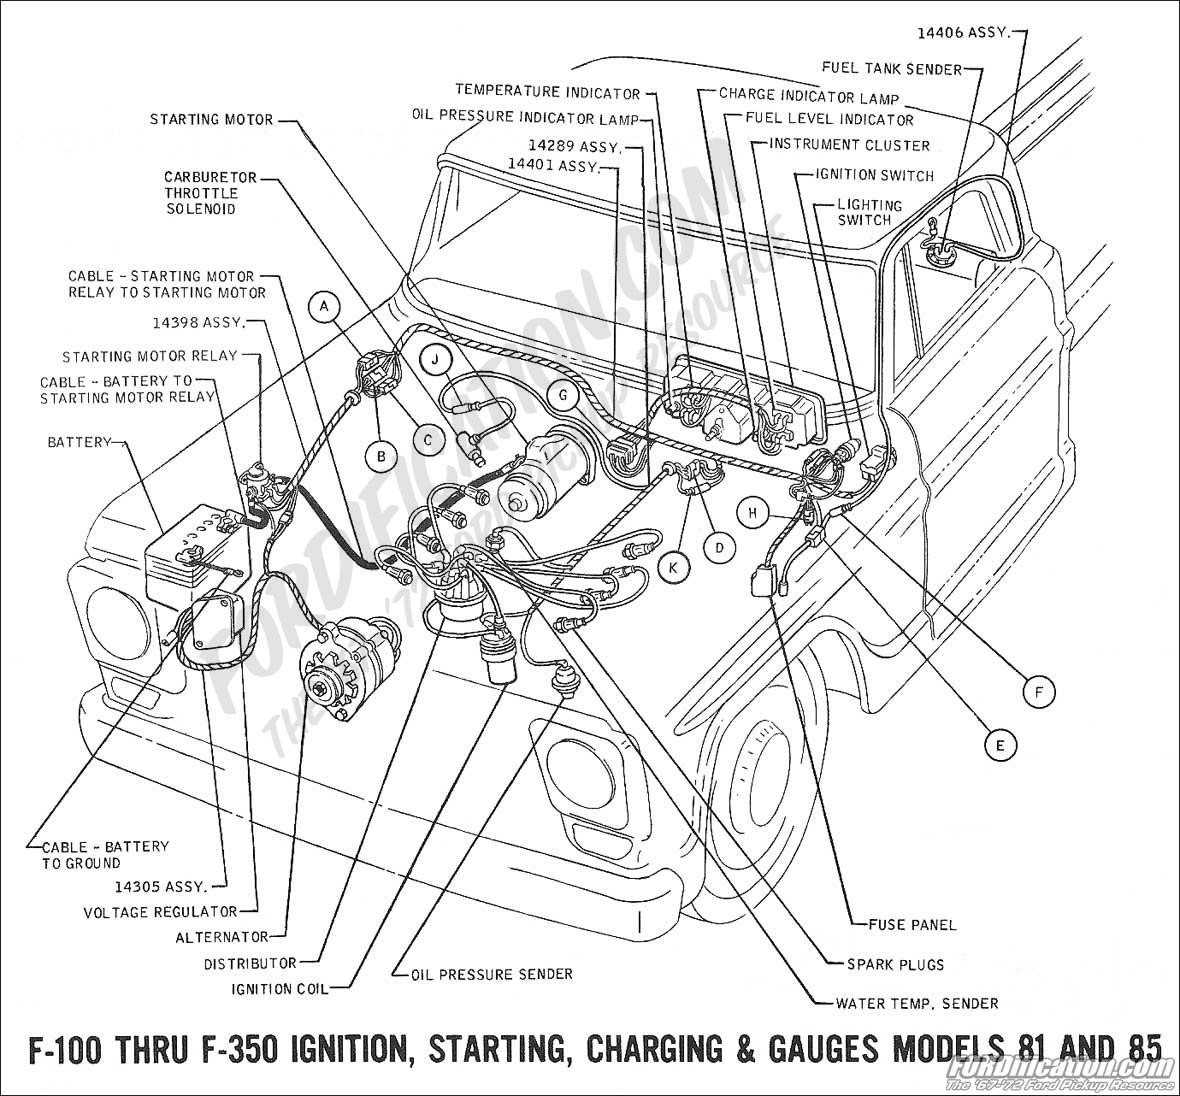 1968 ford f100 wiring diagram stereo wiring diagram database 71 ford pickup wiring diagrams ford truck technical drawings and schematics section h wiring 1968 ford mustang wiring diagram 1968 ford f100 wiring diagram stereo